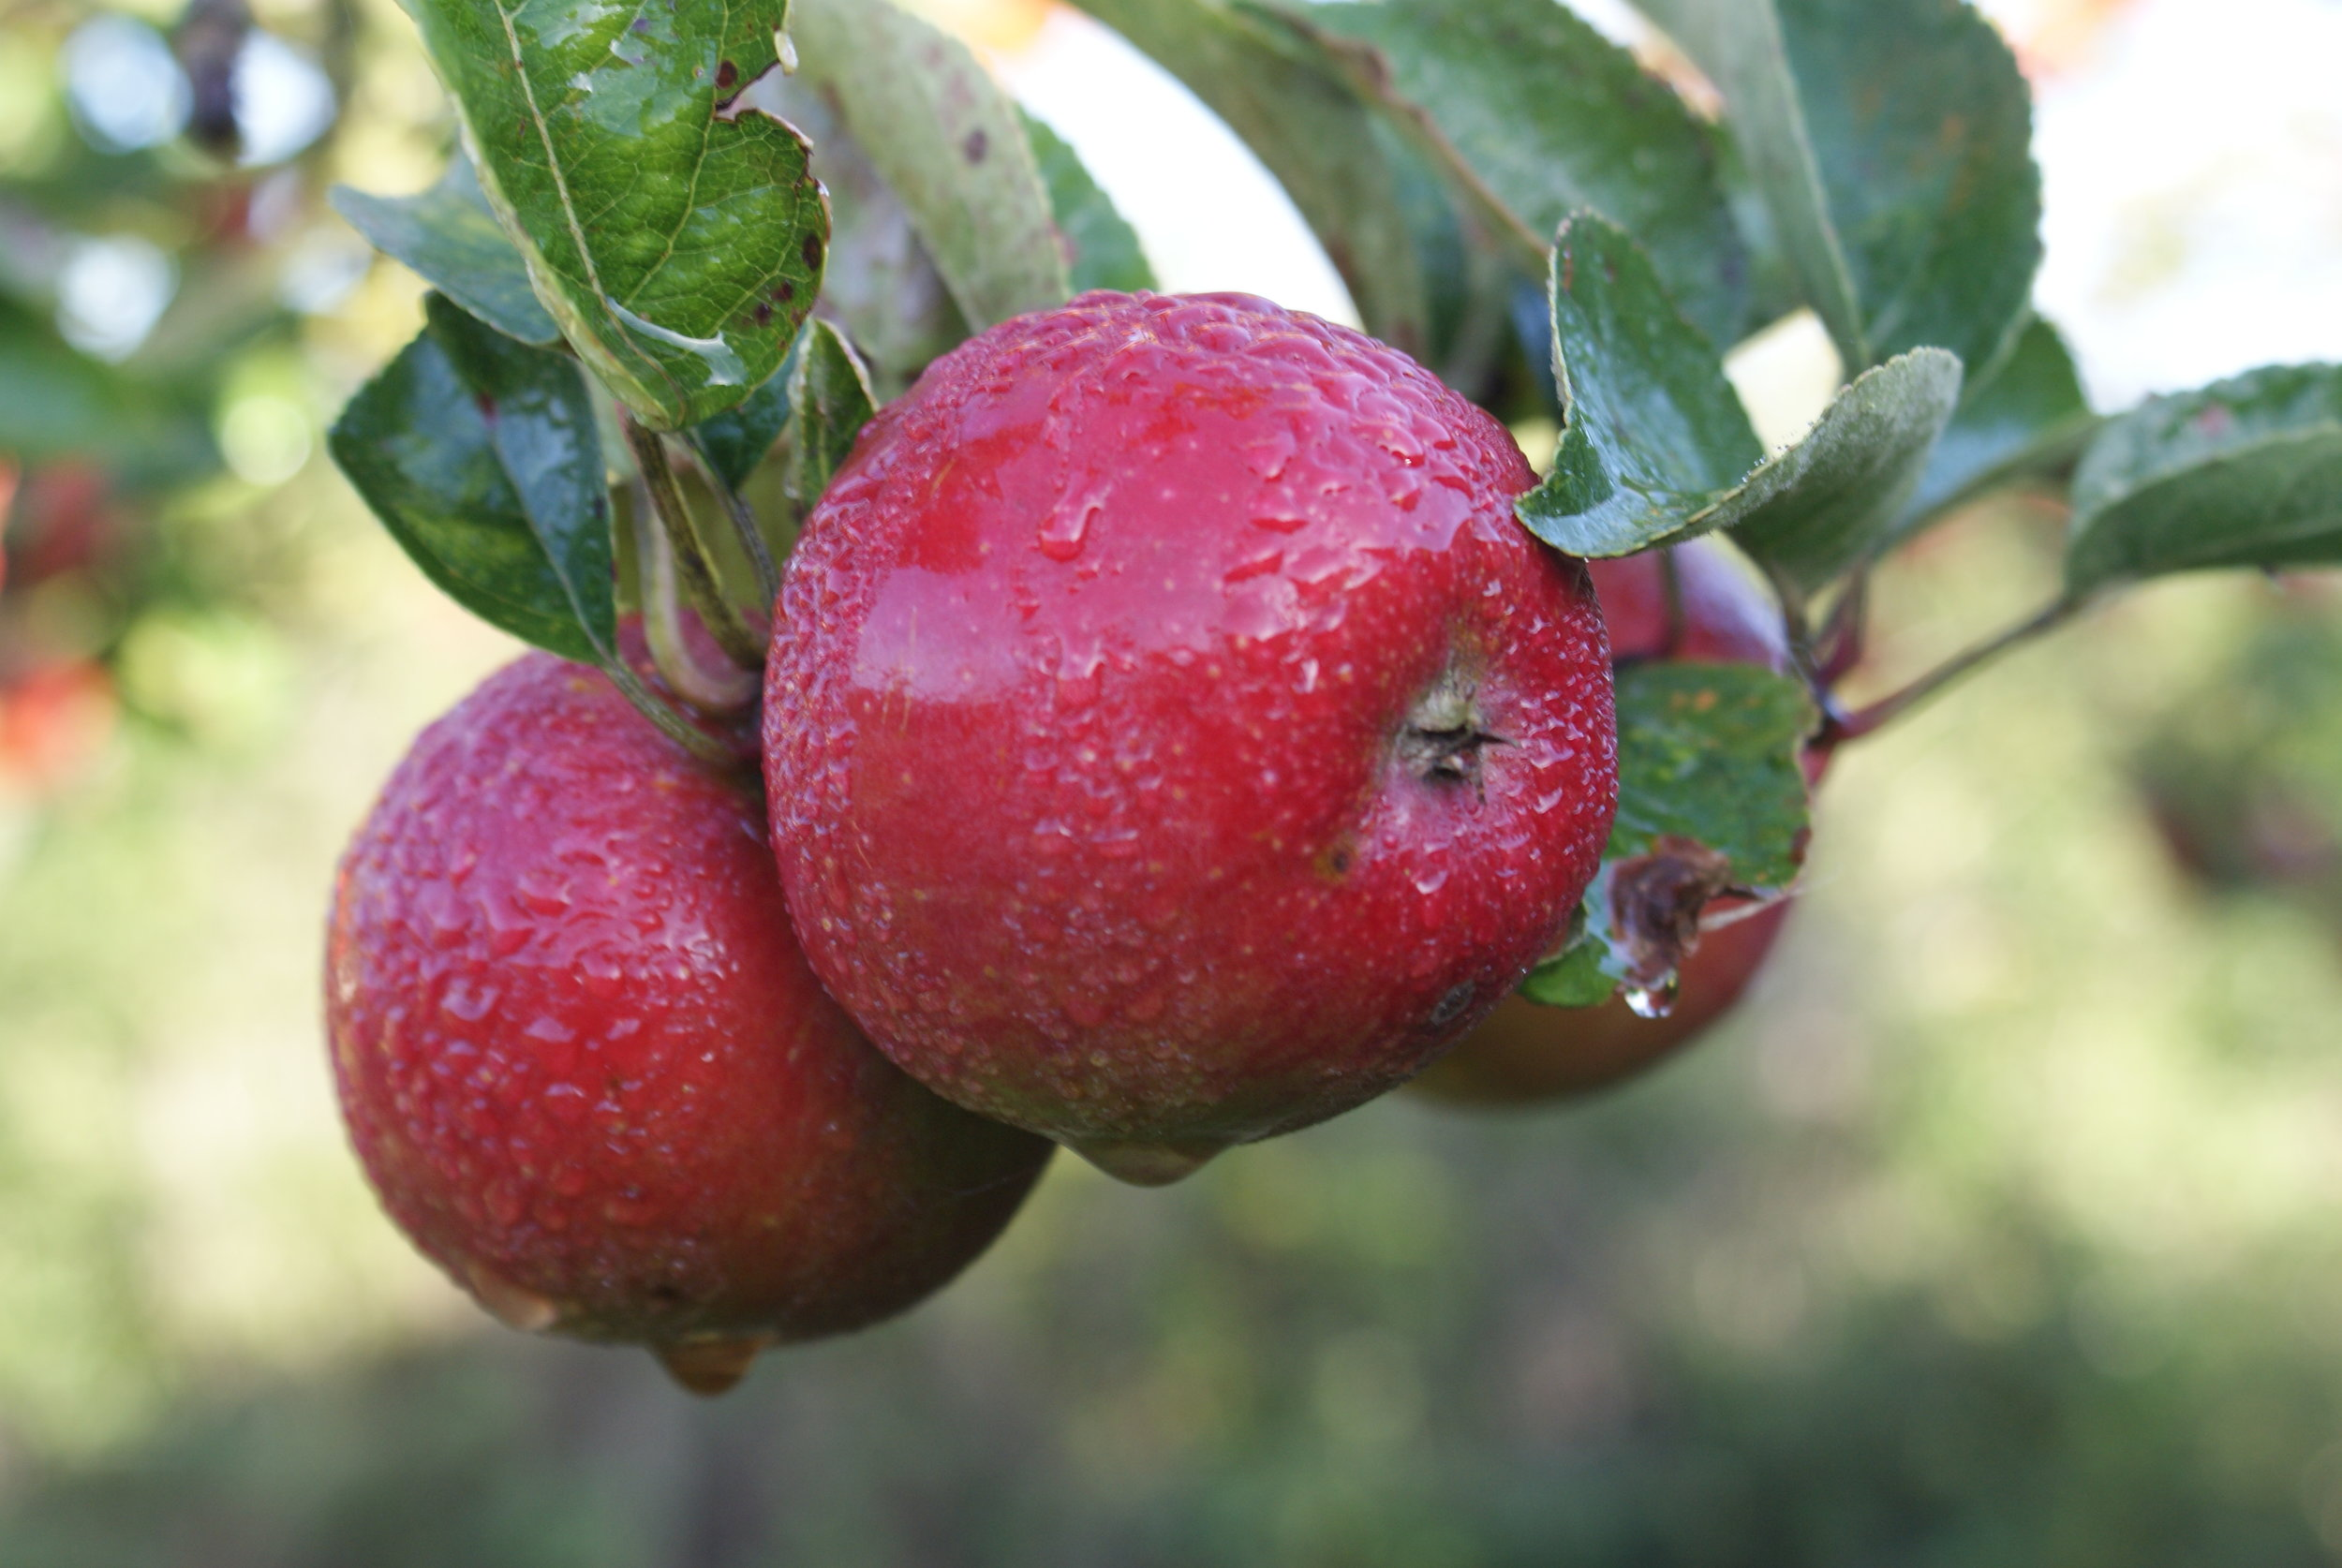 Apples ready to be harvested in the orchard.